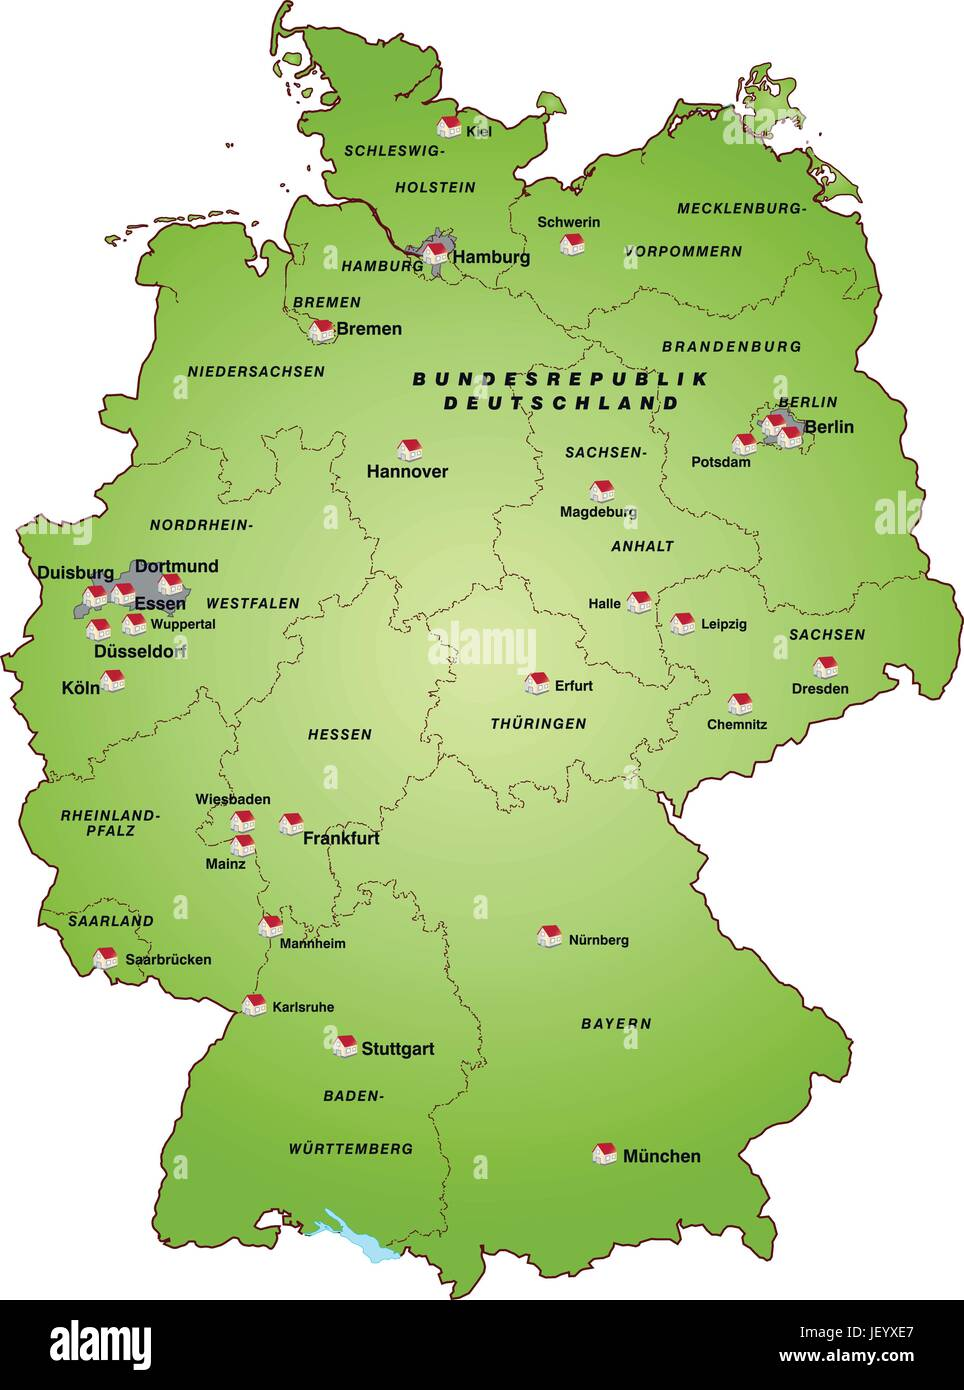 Card State Atlas Map Of The World Map Map Of Germany Germany